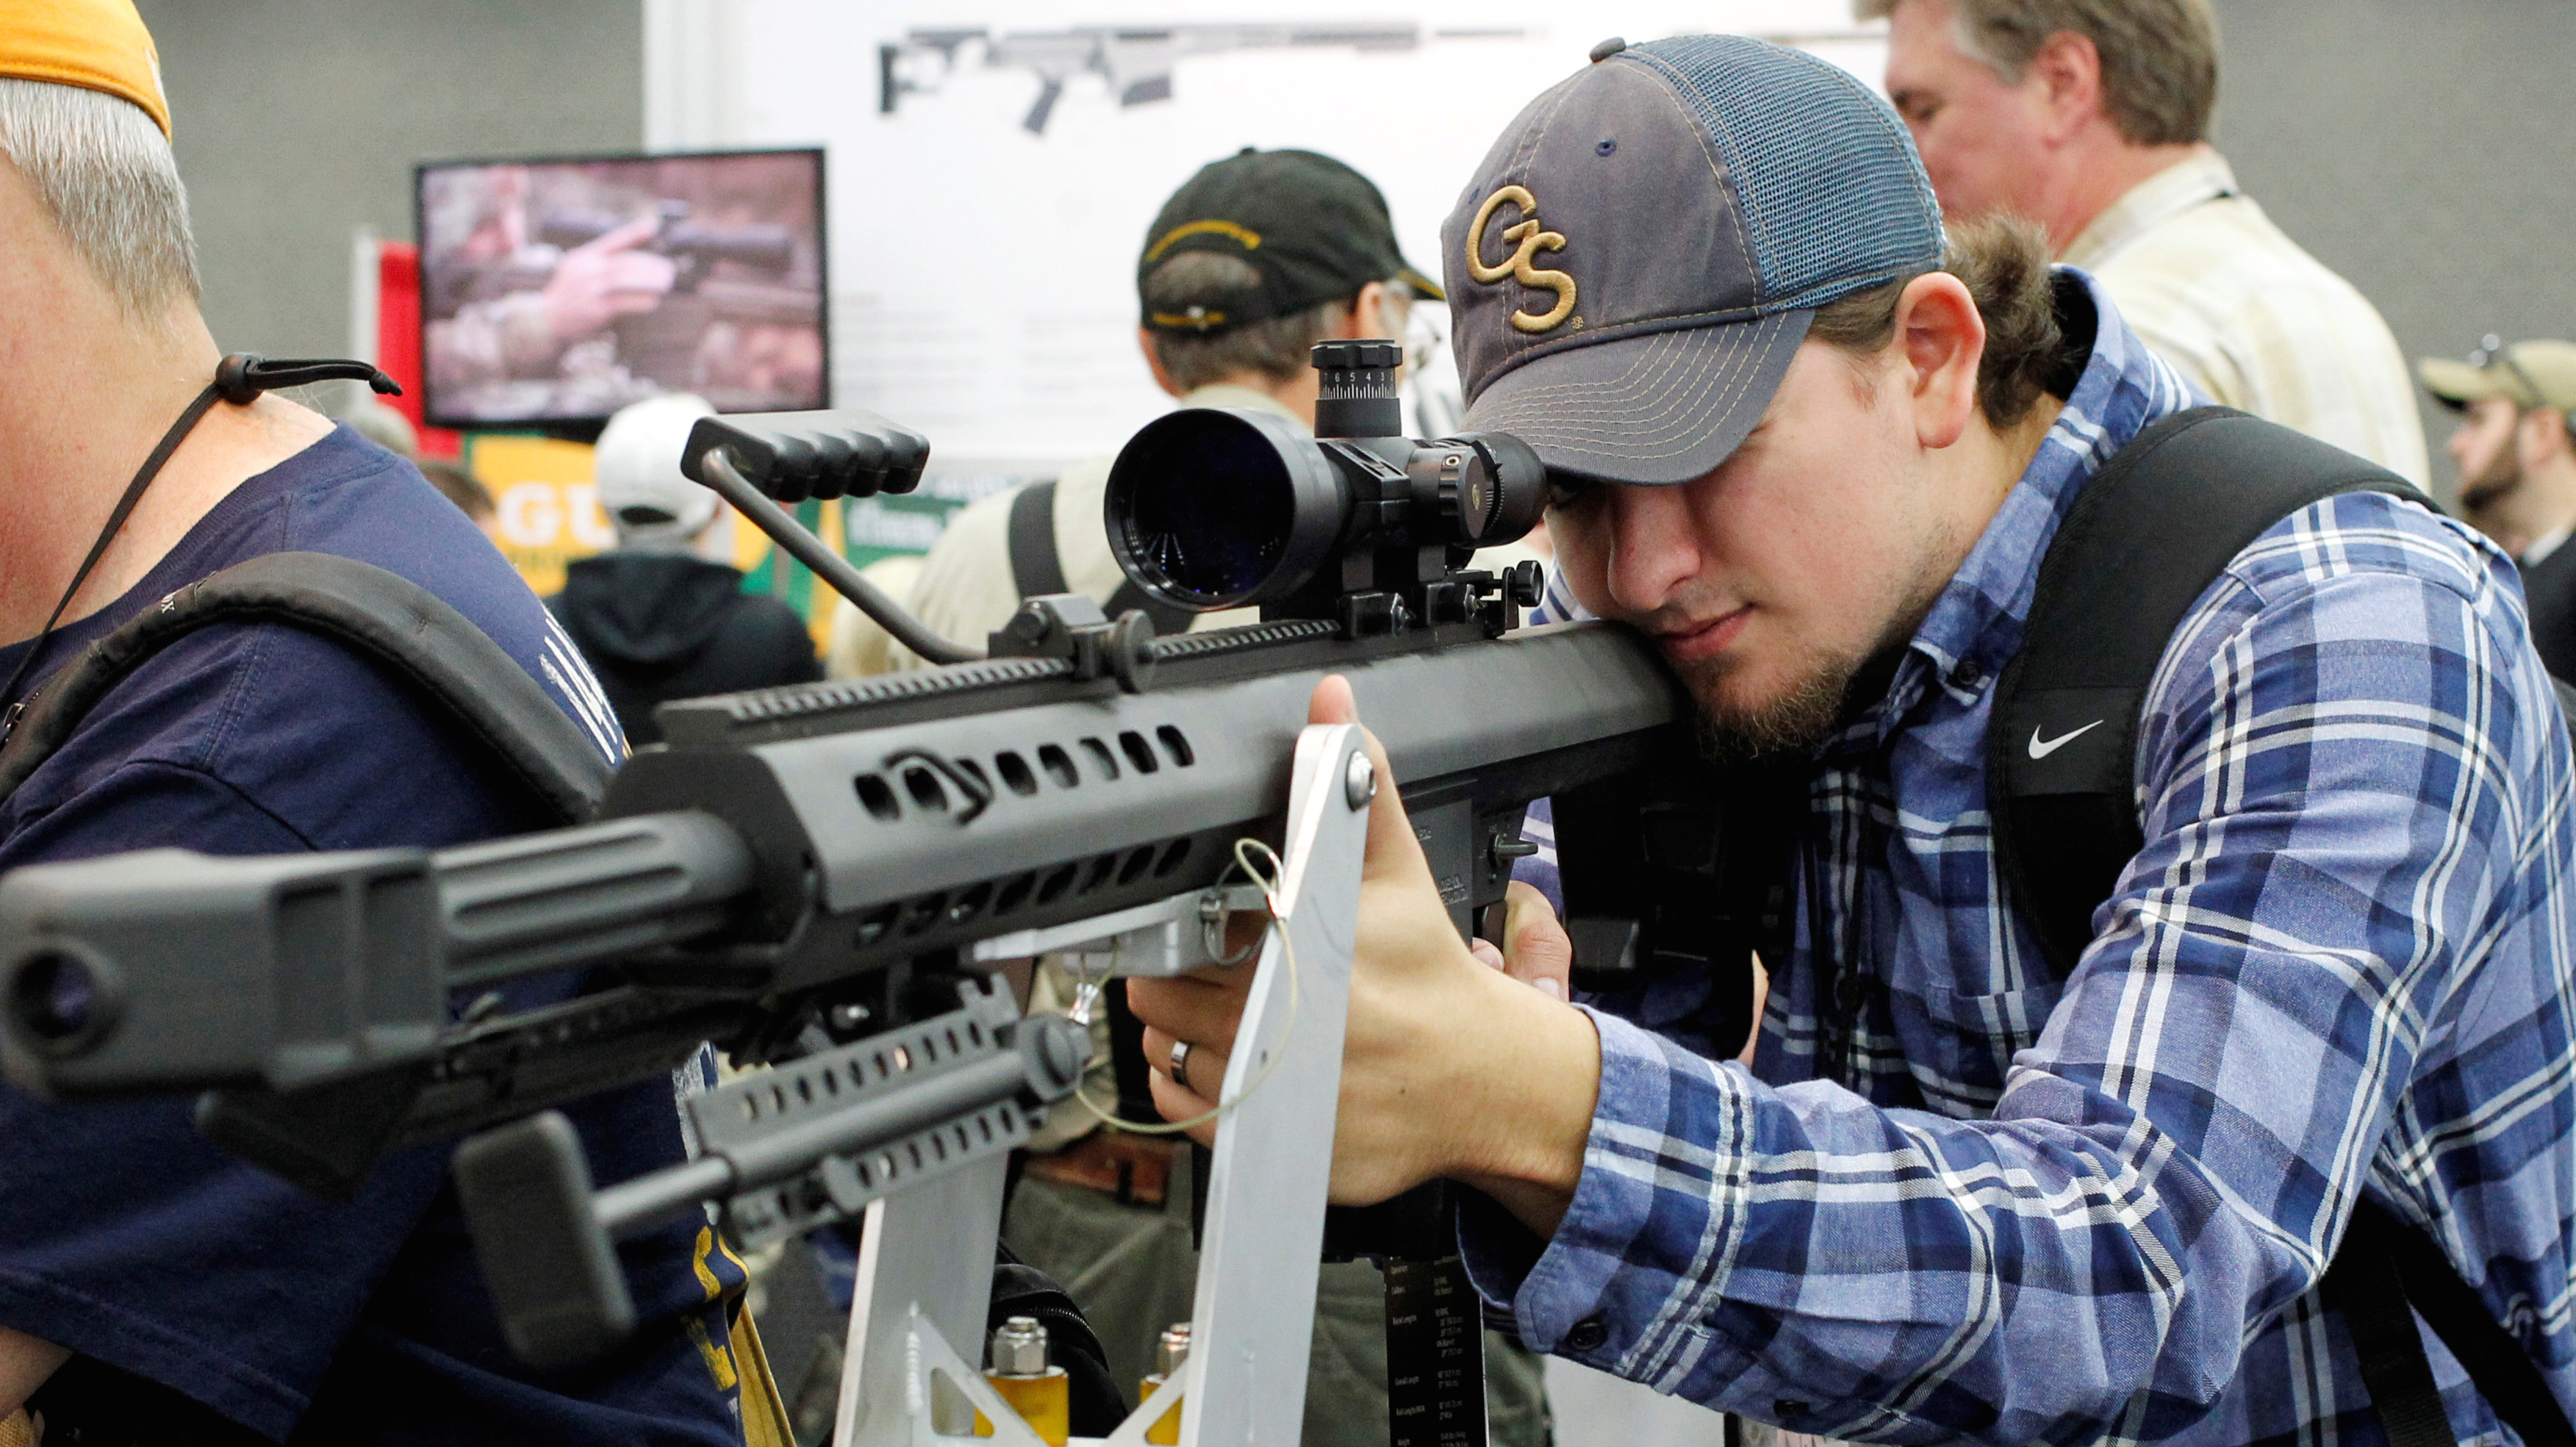 Brannan Ganas looks over guns at the Barrett Firearms booth at the National Rifle Association's annual meetings and exhibits show in Louisville